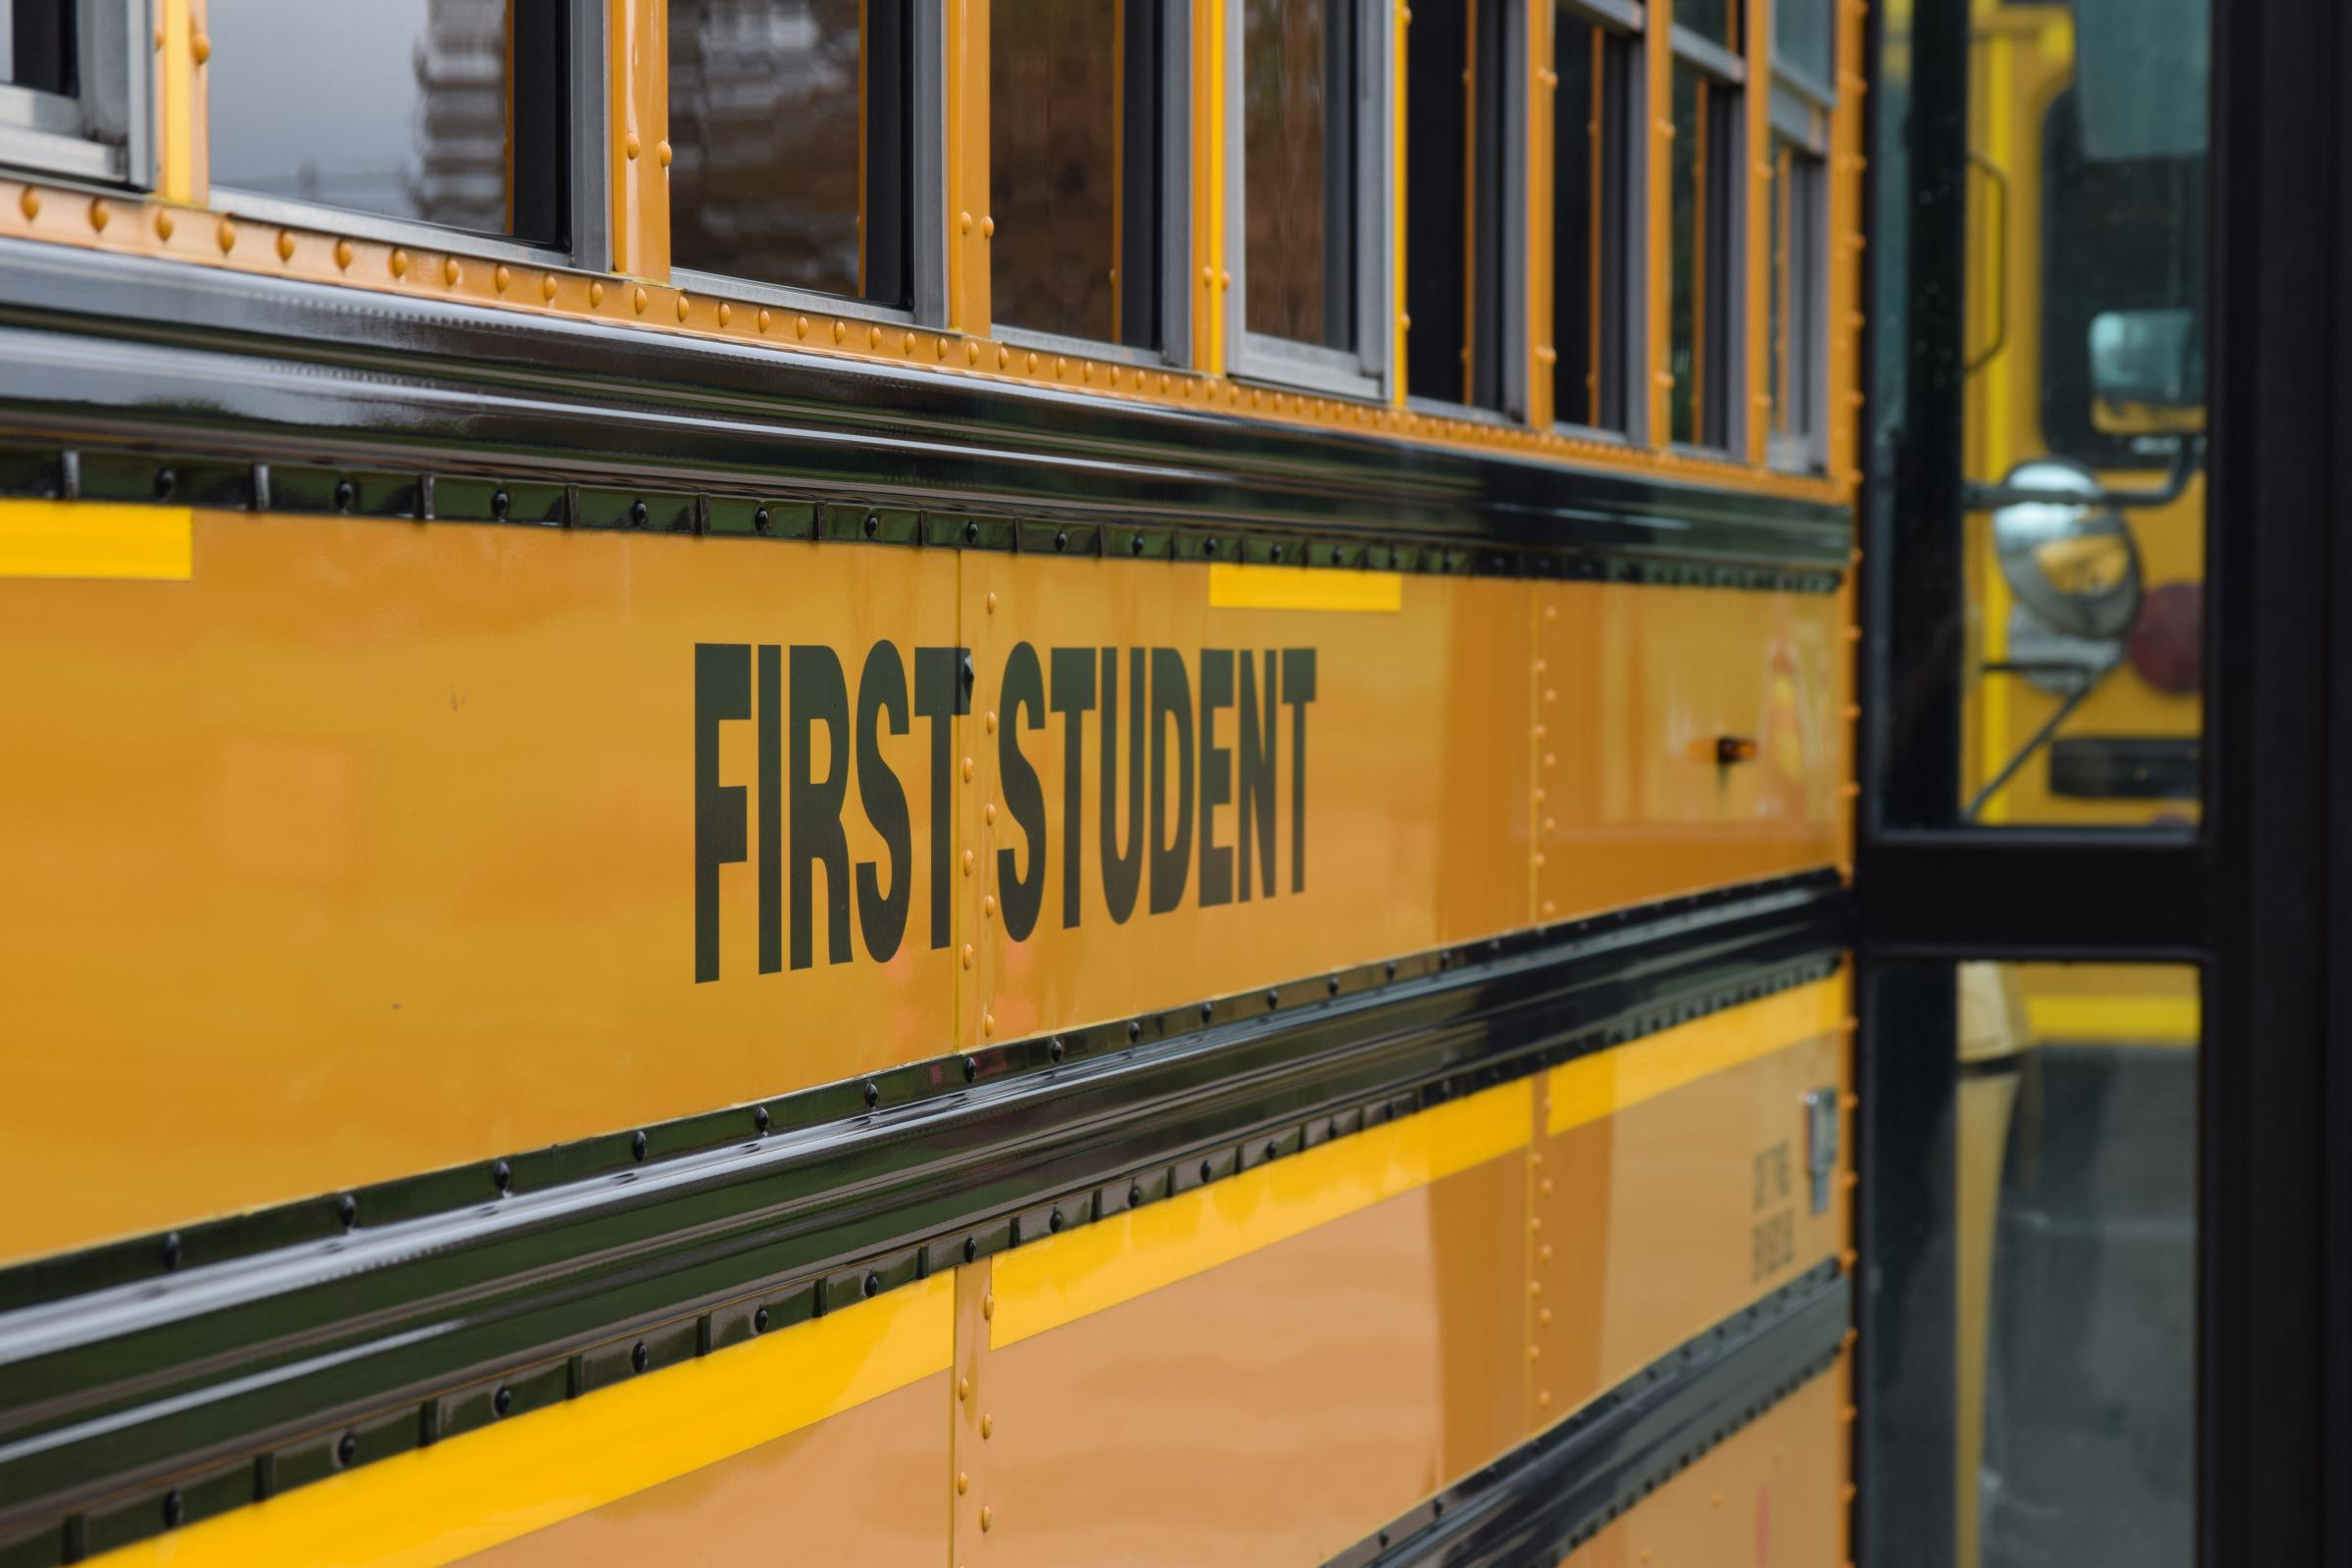 Unit 5's Bus Company On Short Leash When School Year Begins